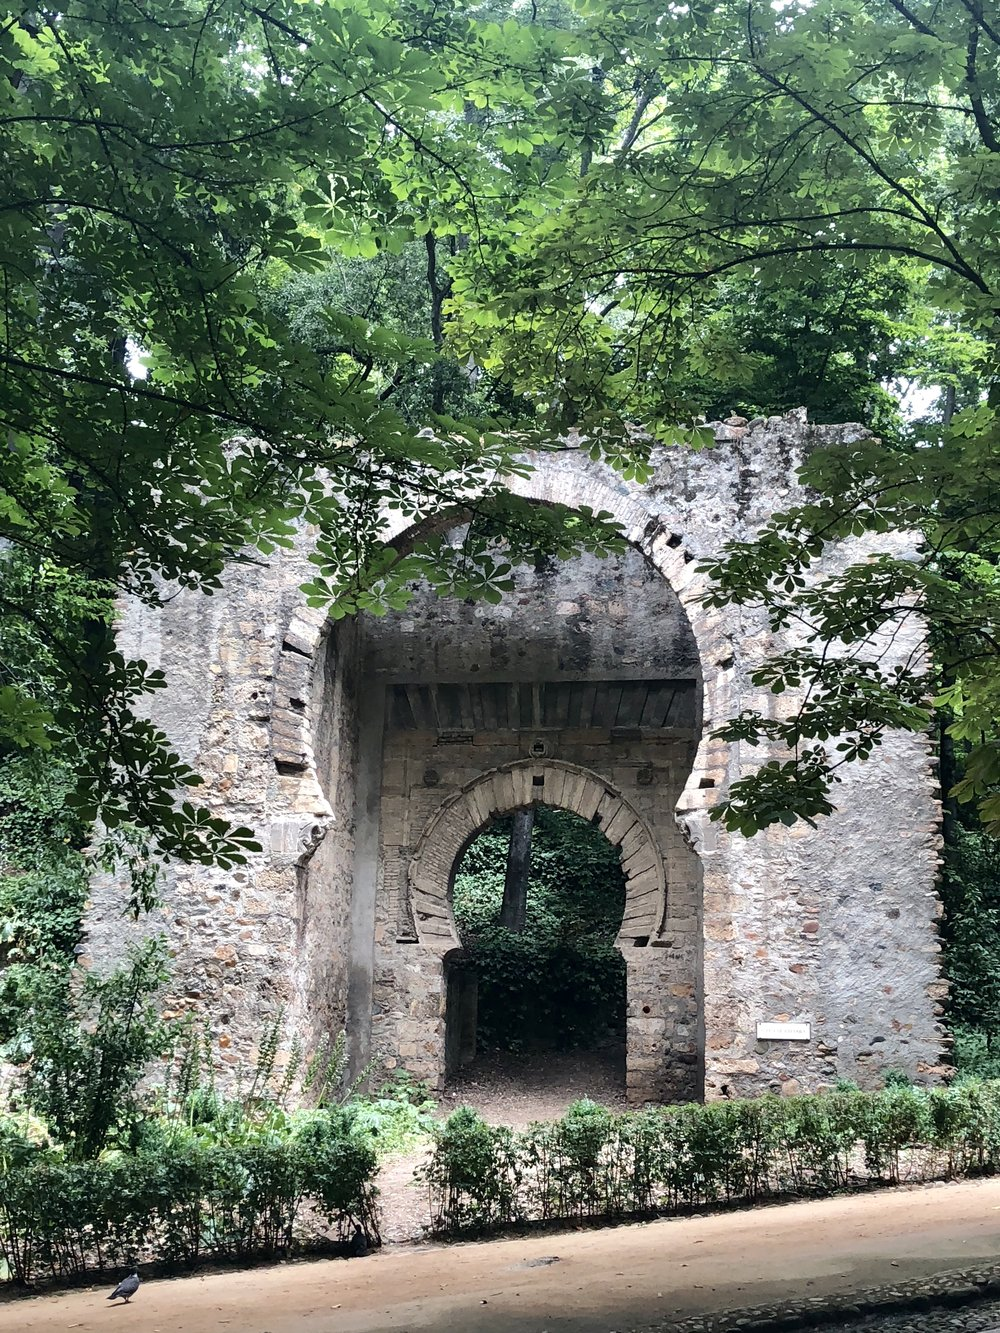 One of the still standing entrances to the fortress on the way to the city gate.